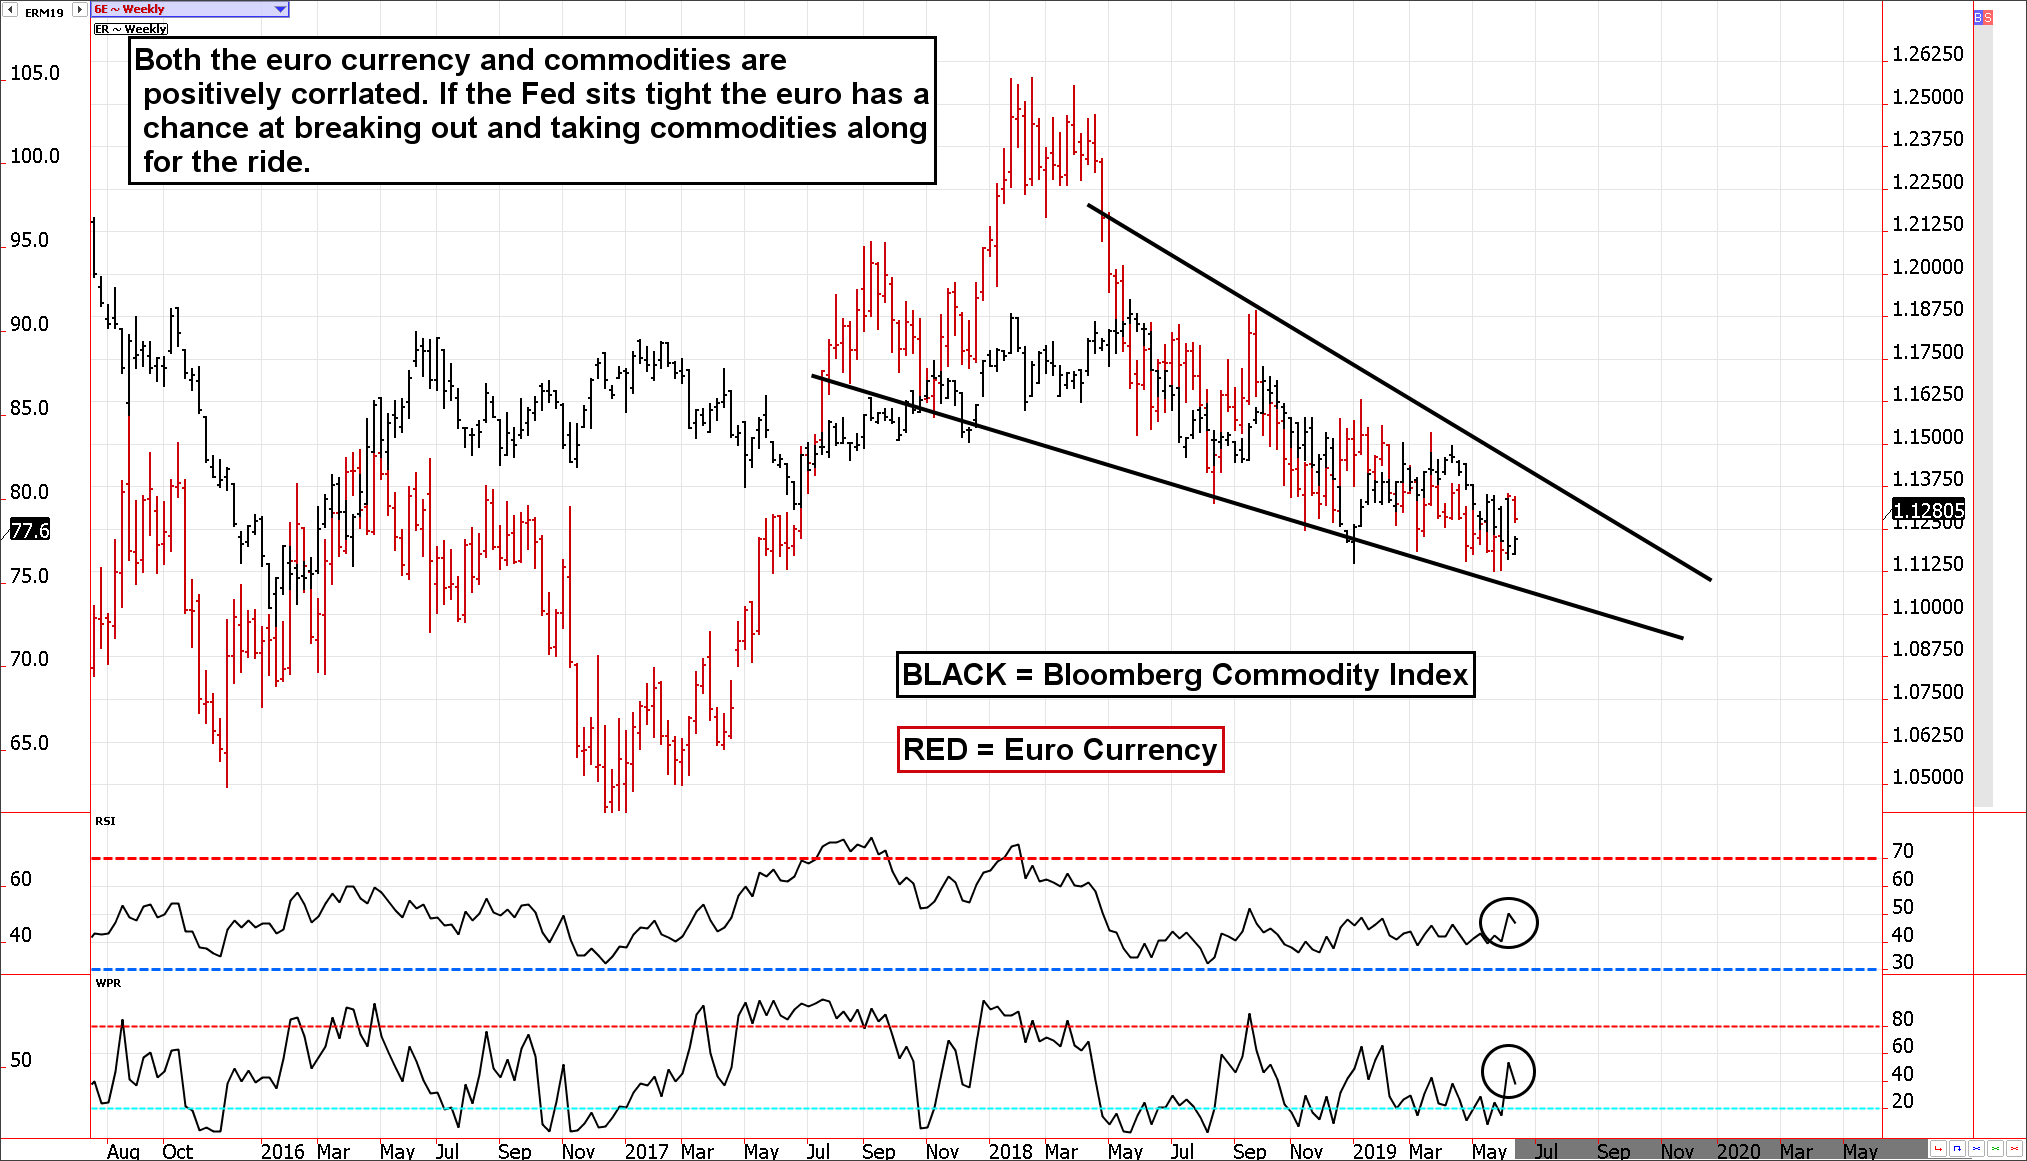 Euro currency vs. Bloomberg Commodity Index